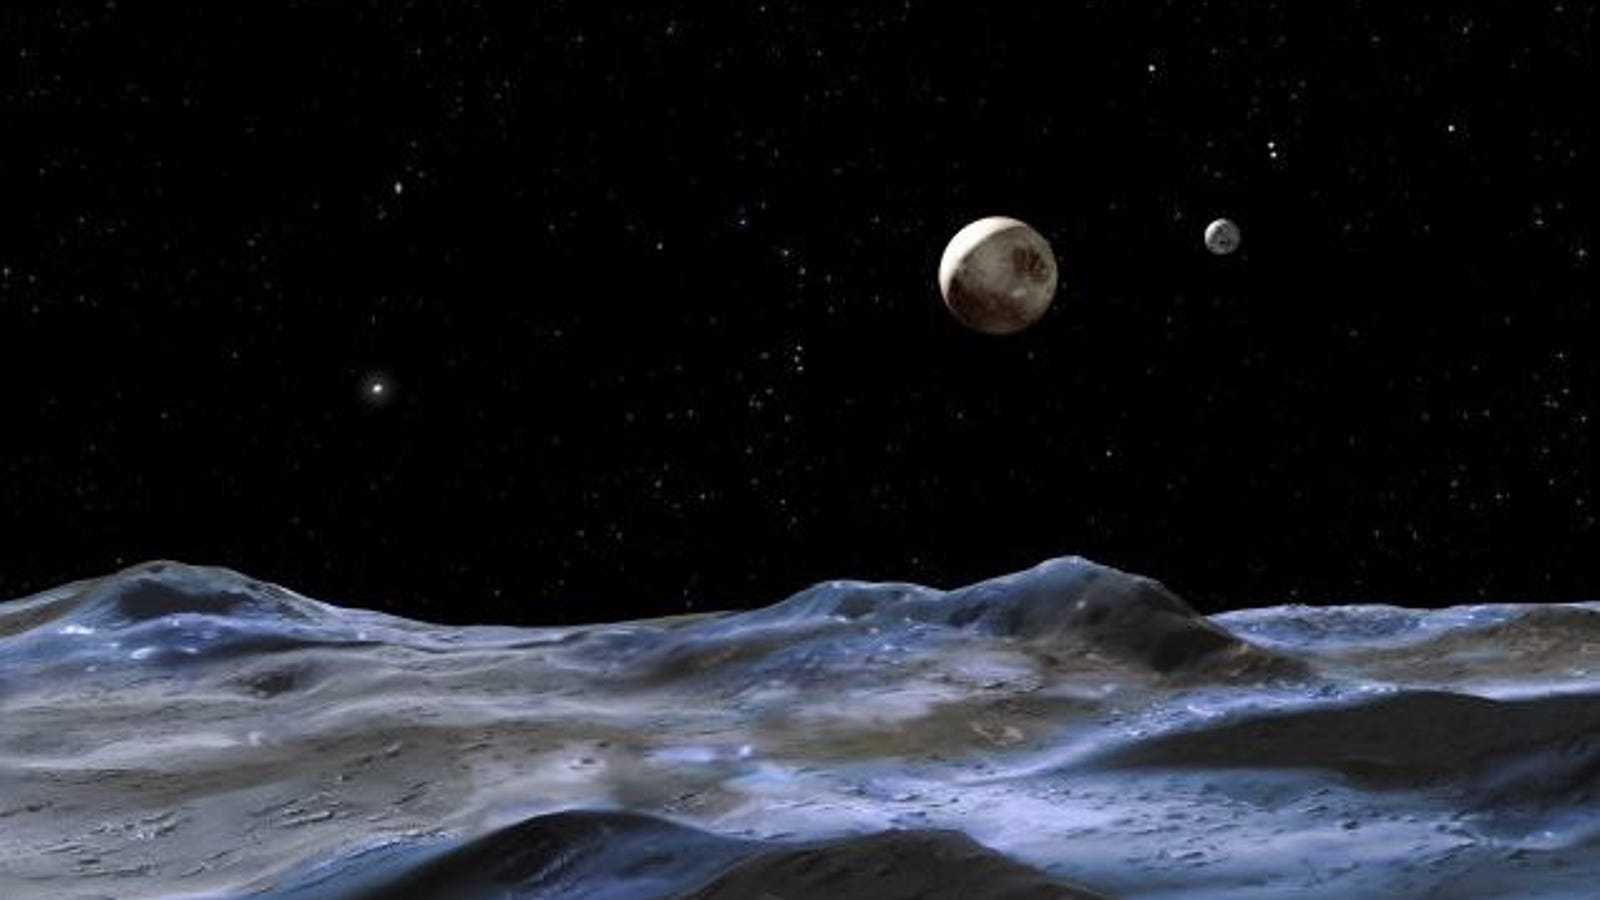 Discovery Of Pluto: When We Discovered Pluto, It Changed How We Saw The Solar